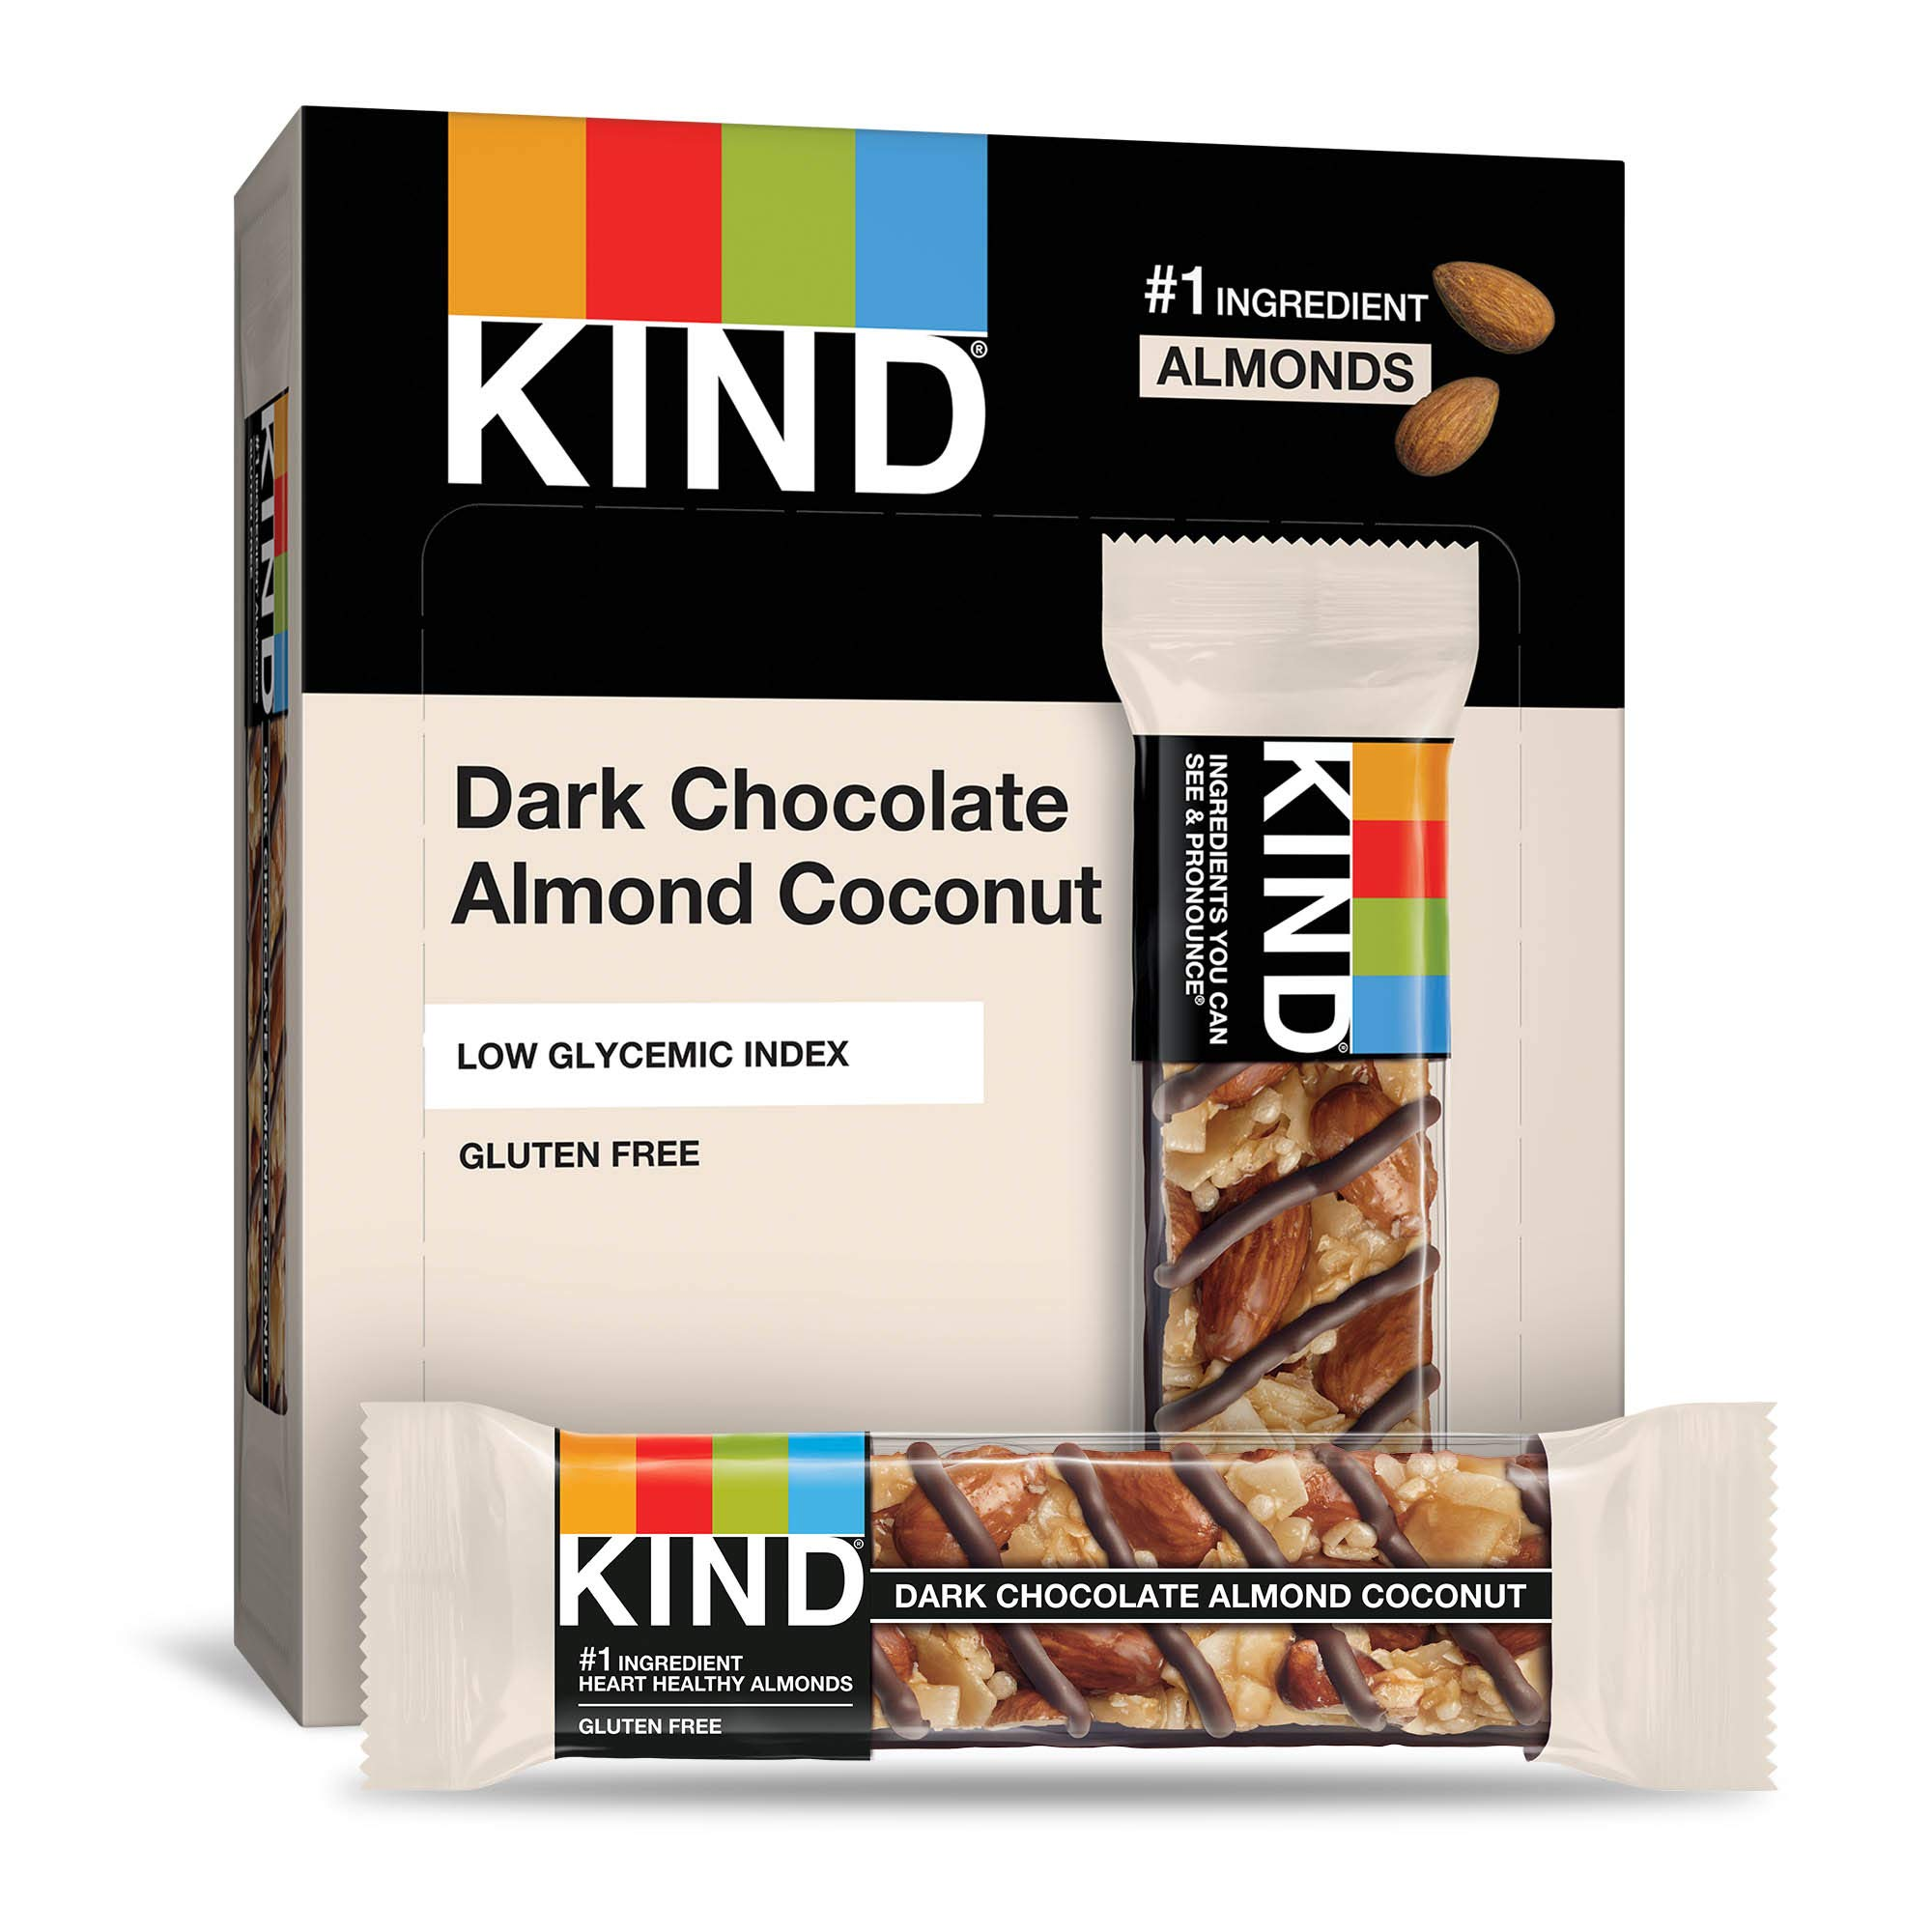 KIND Bars, Dark Chocolate Almond Coconut, Gluten Free, 1.4 Ounce Bars, 12 Count by KIND